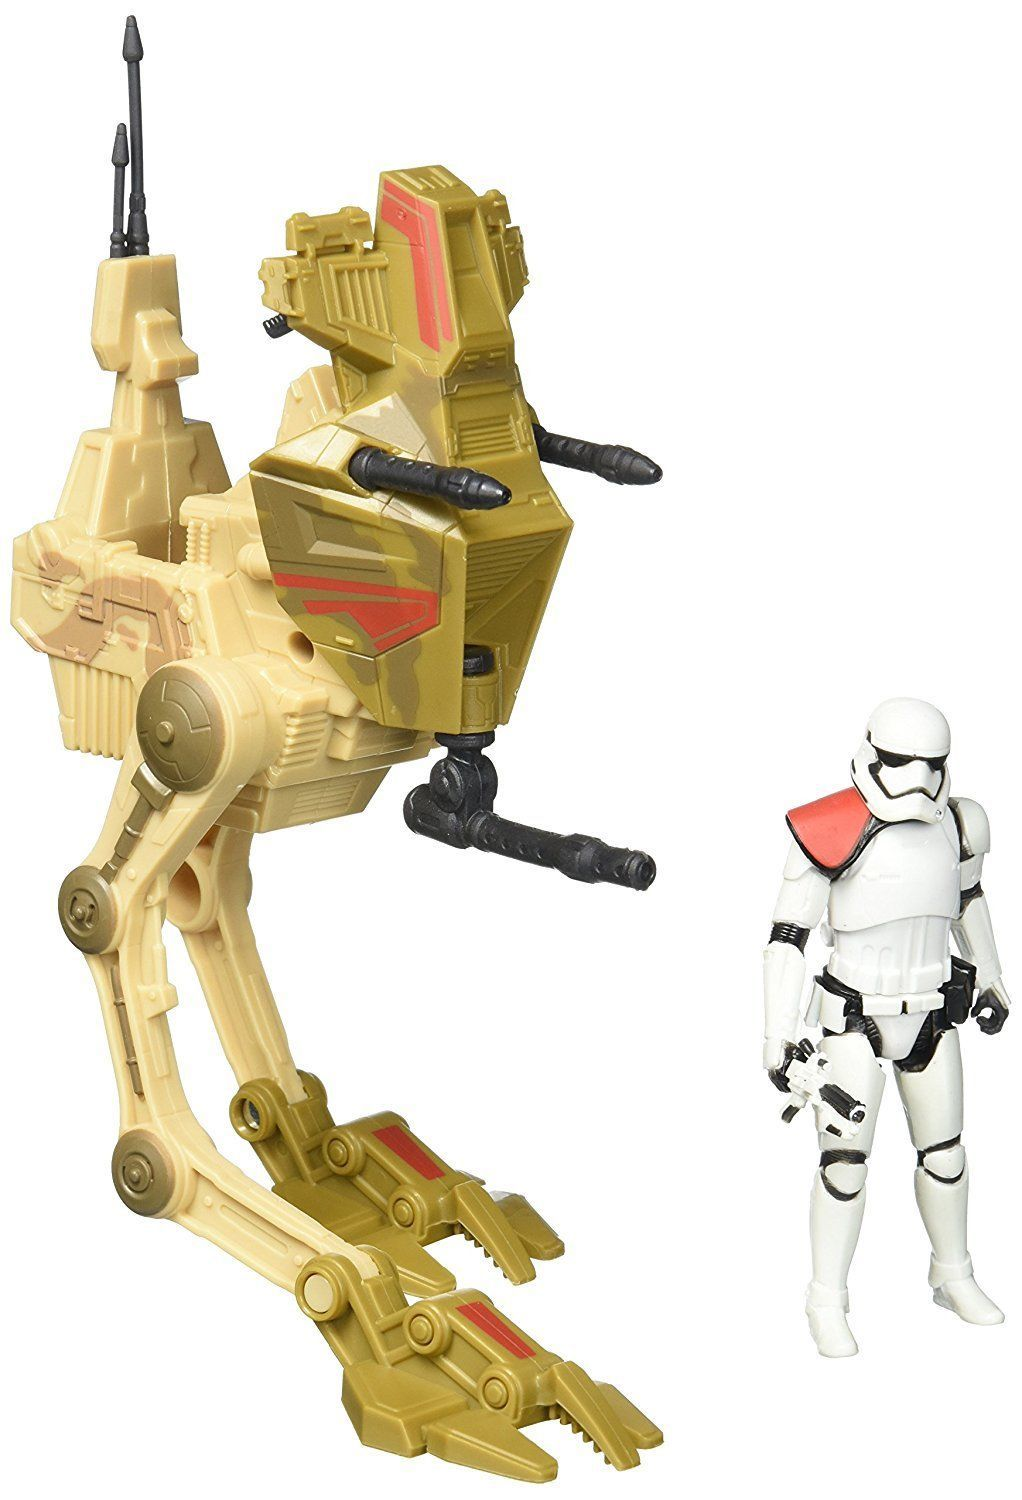 Star Wars Desert Assault Walker with Figure - EE Exclusive 2015, Hasbro 4+